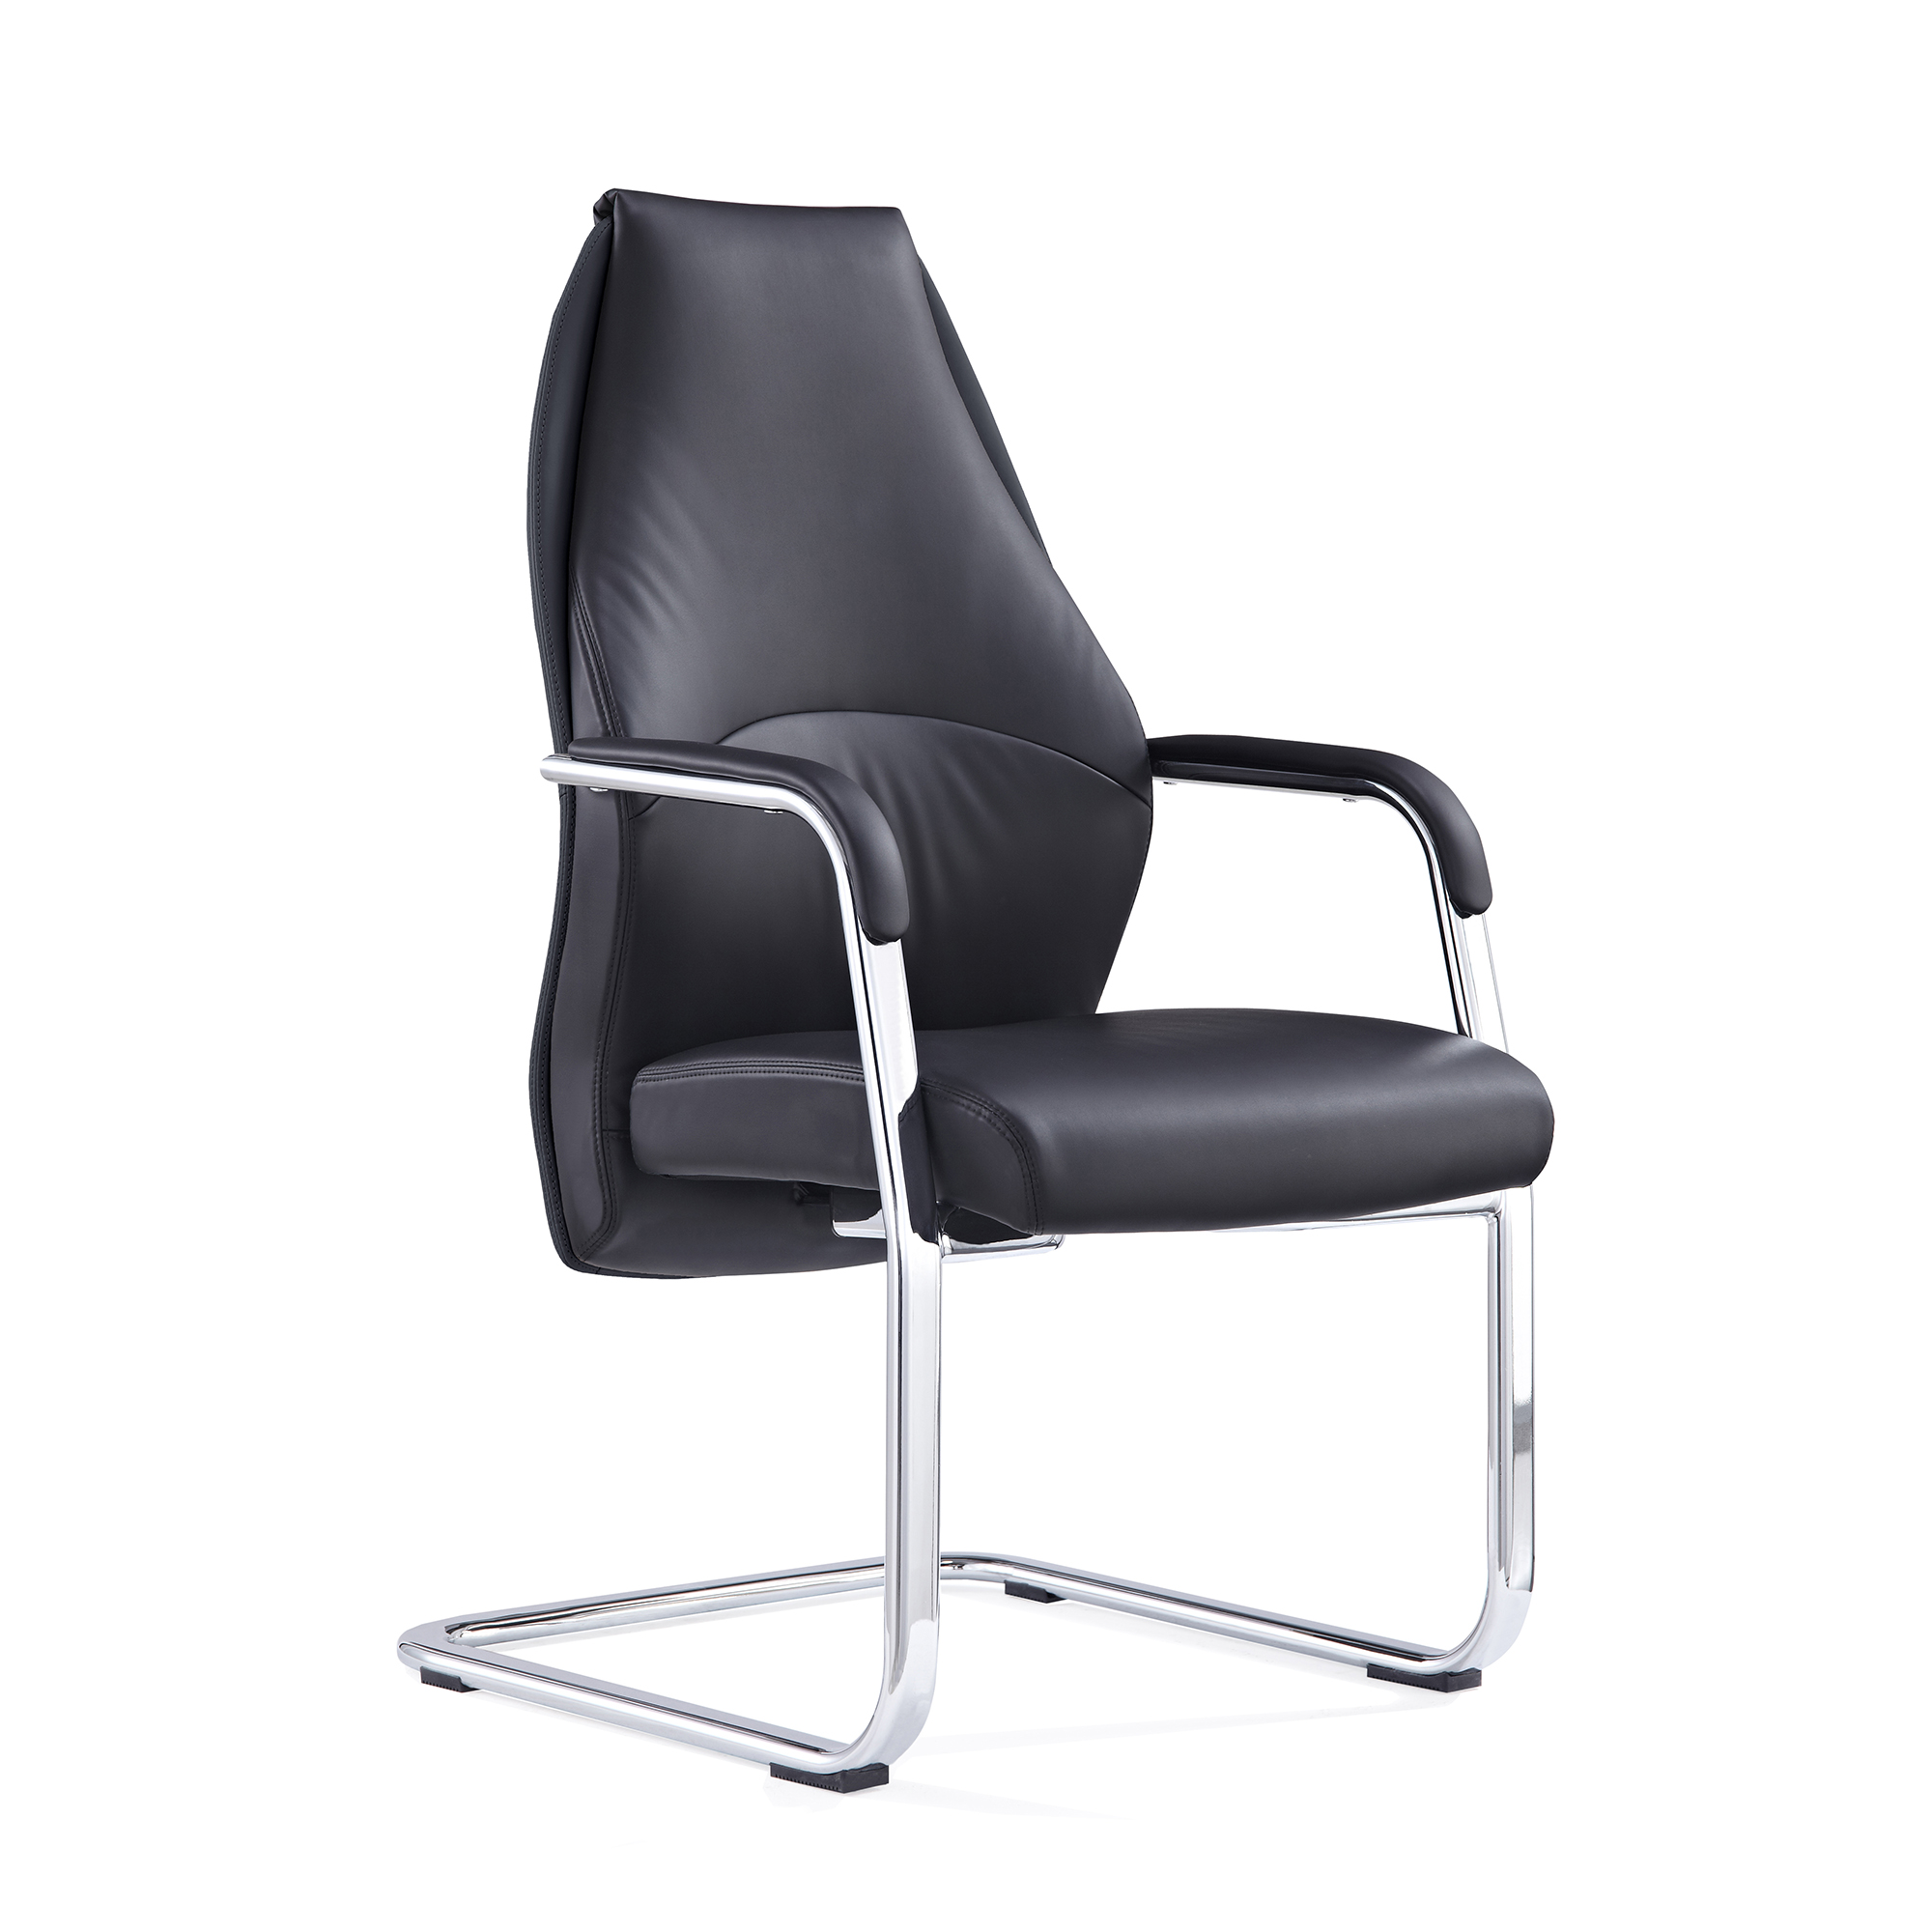 #ADROIT MIEN BLK CANT CHAIR